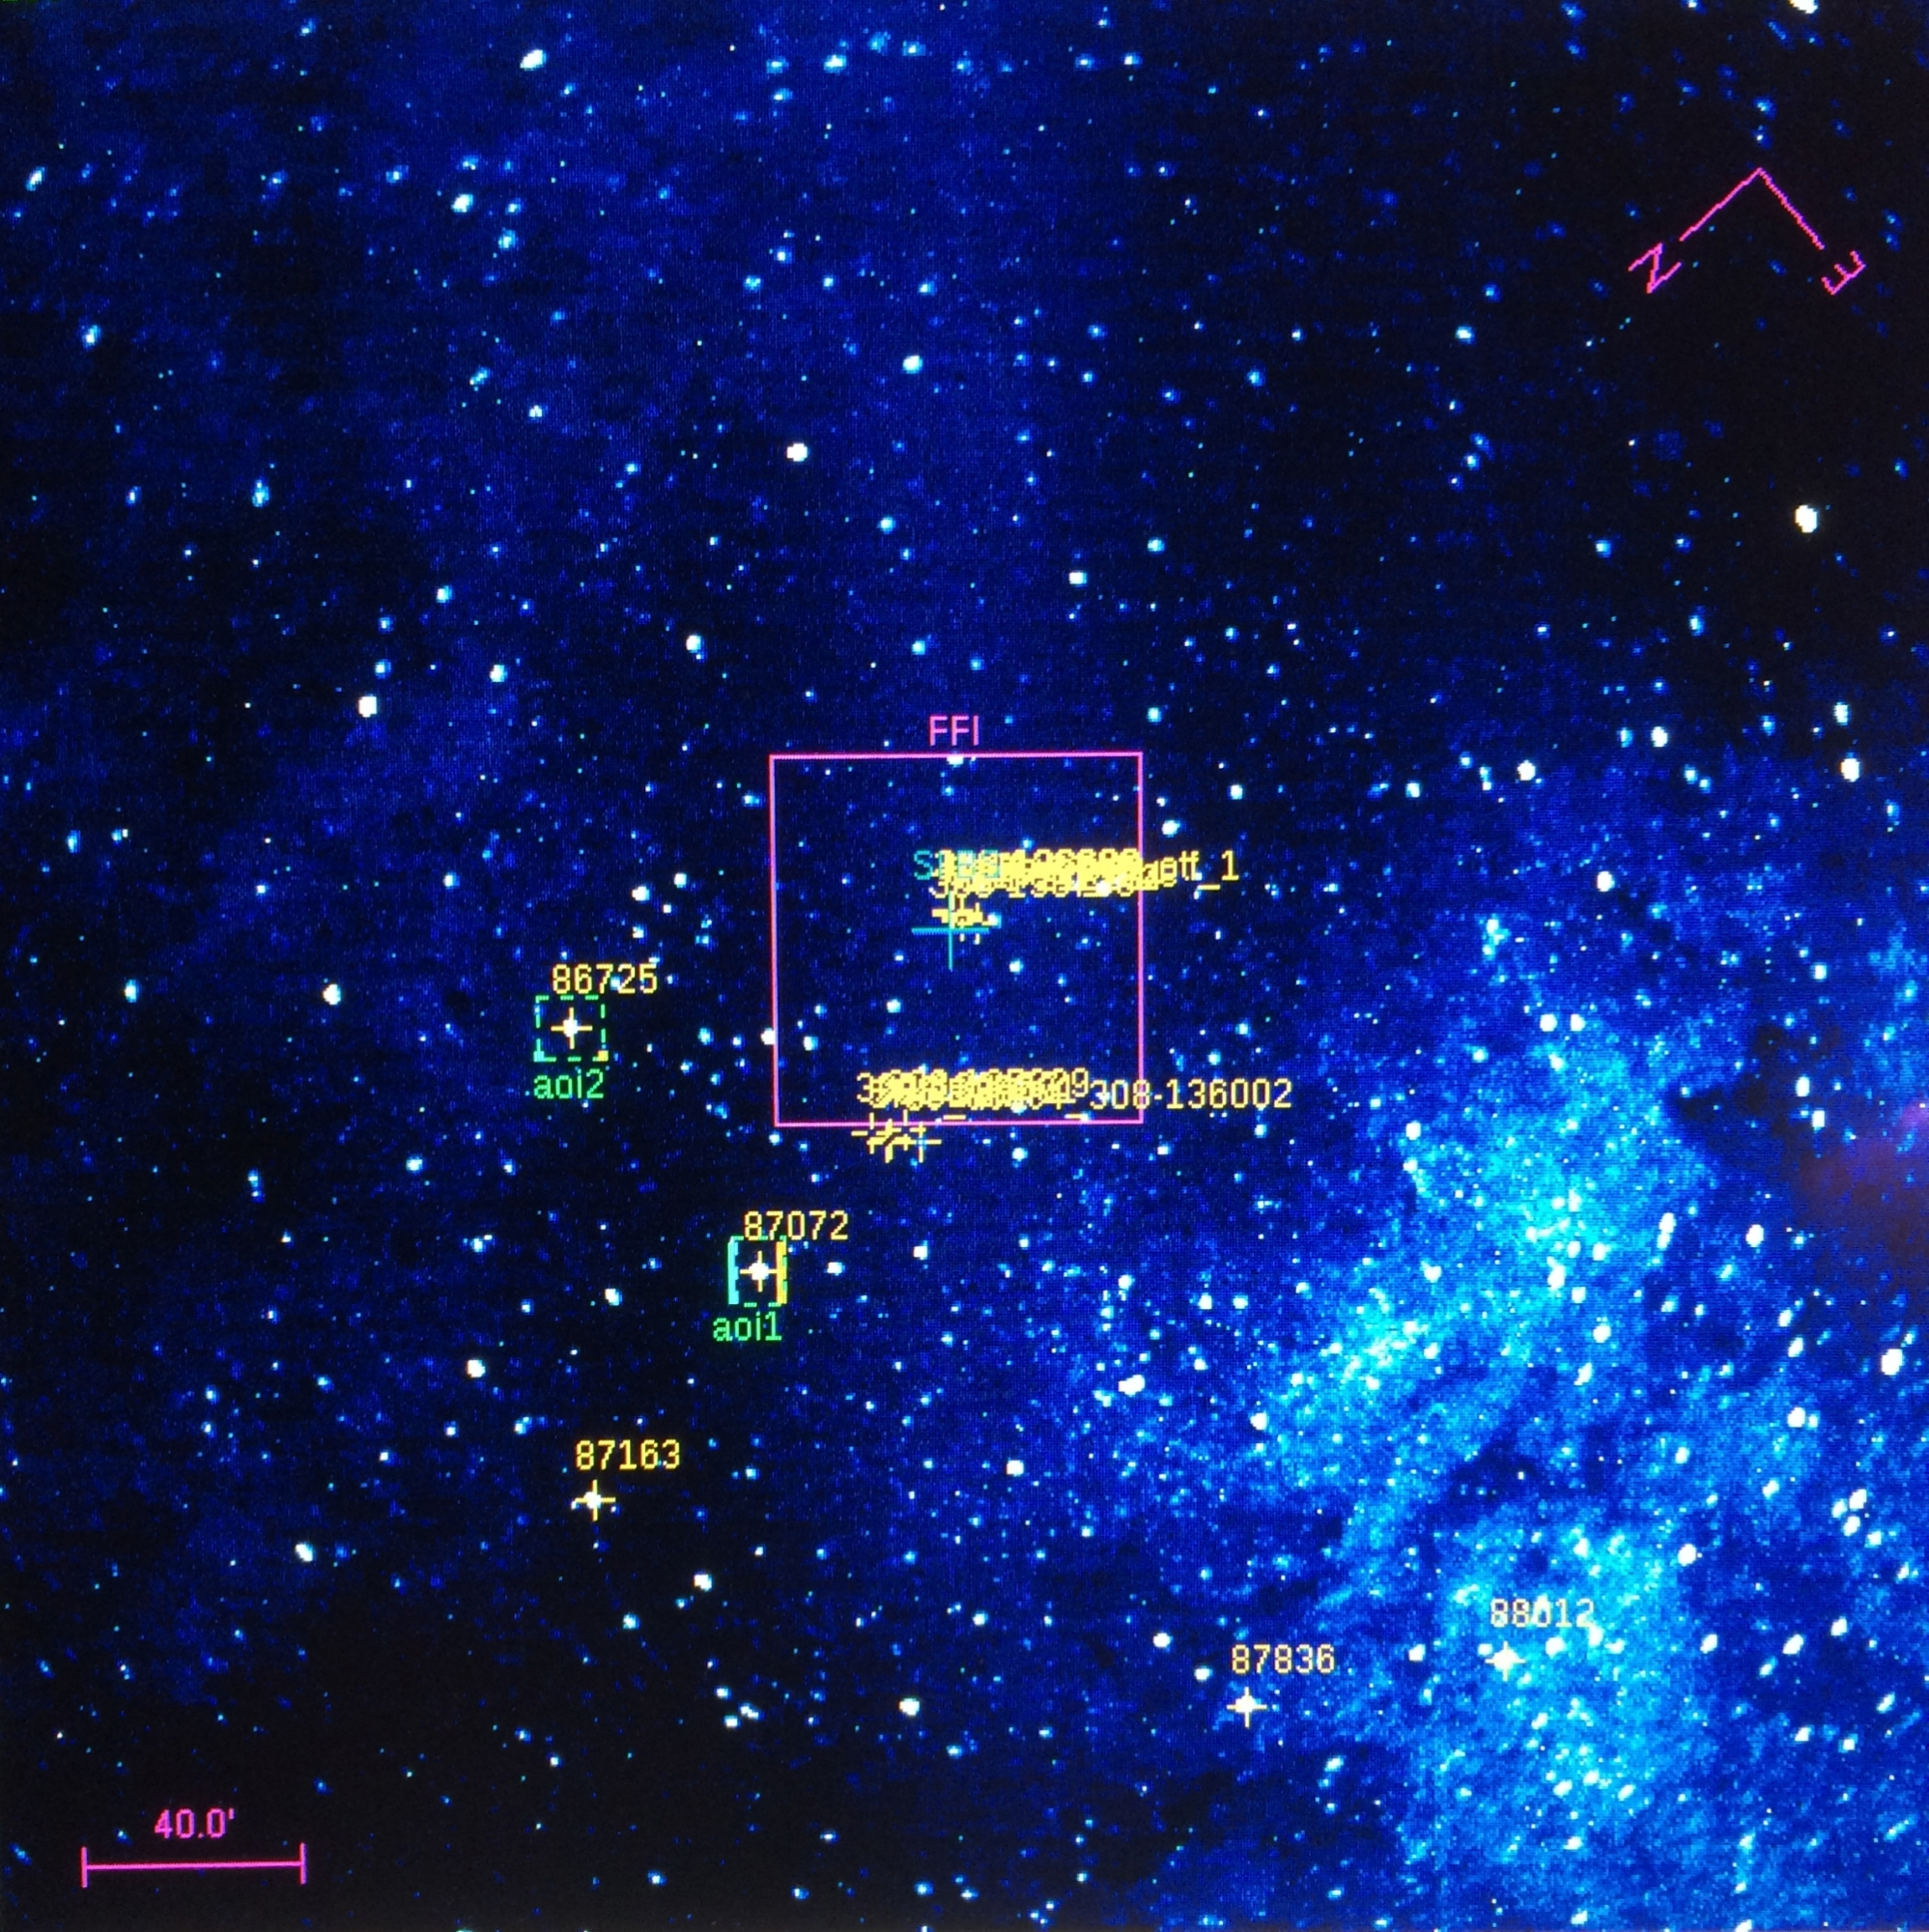 Galactic Center with FPI+